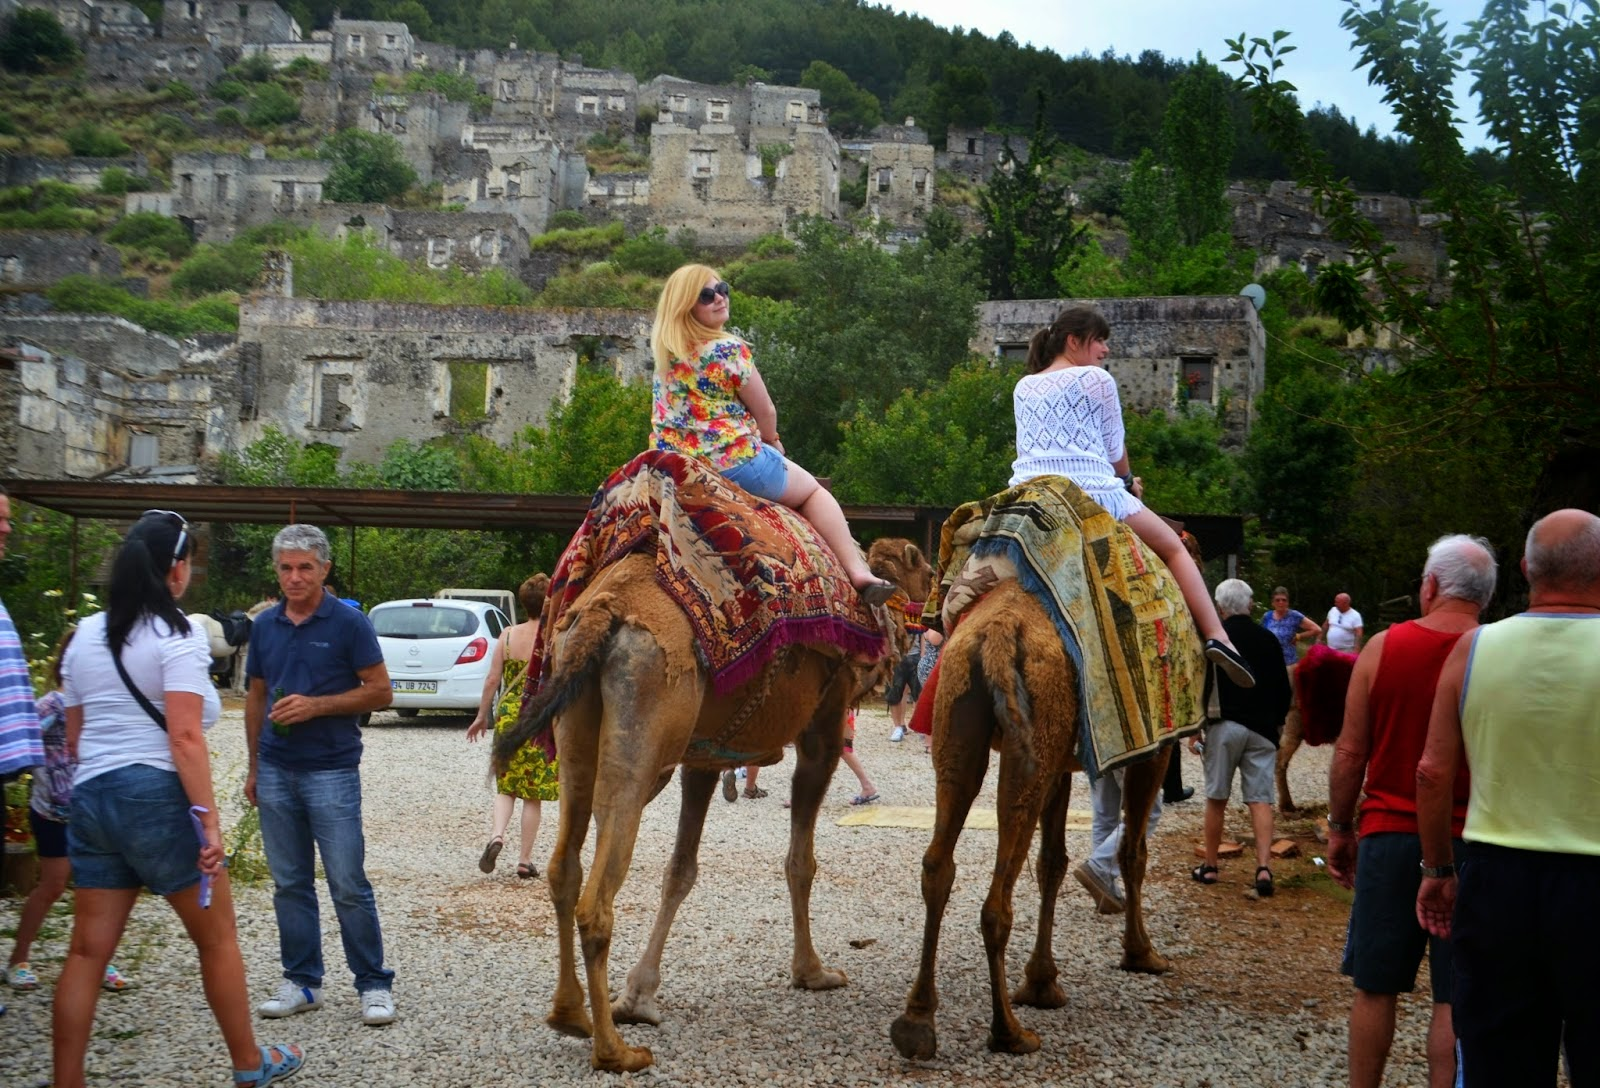 Myself and my sister riding Camels in Turkey.